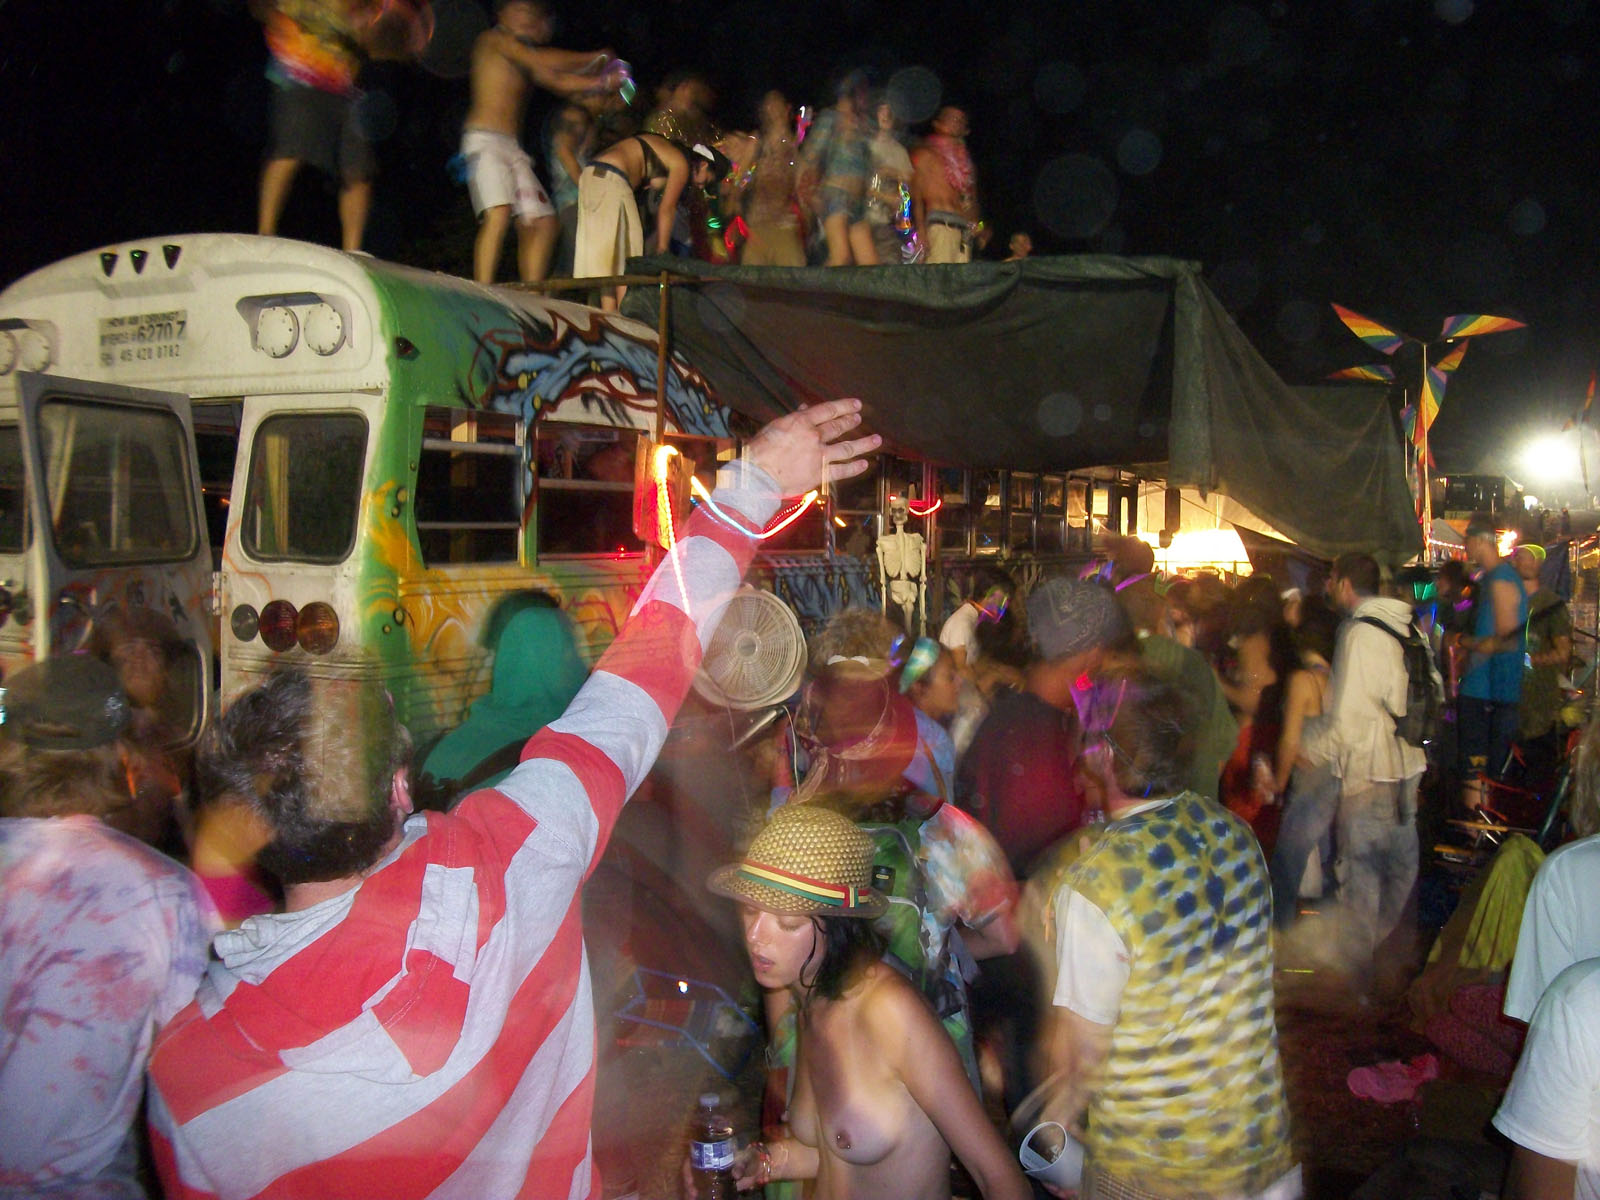 There was always a party going on at the Future Bus!